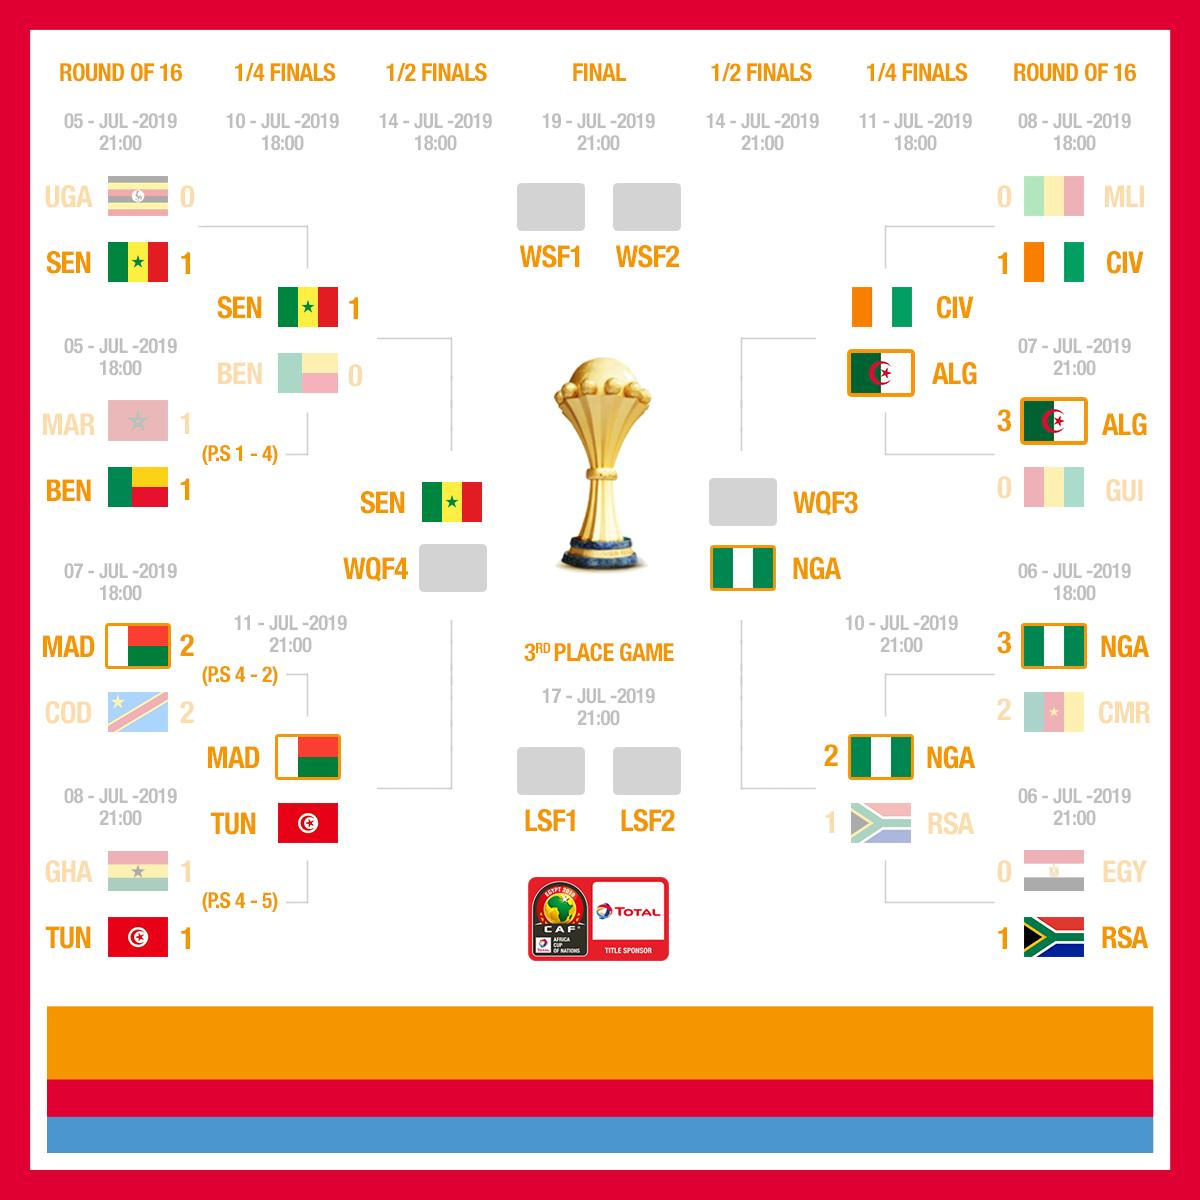 #TotalAFCON2019  Tonight, only 4 teams will remain, but we already know 2 of them: @FootballSenegal  and @NGSuperEagles !  Next: 6pm (local time) @FIFCI_tweet   vs @LesVerts    9pm (local time)  Madagascar  vs @tunisiefootball   #FootballTogether #CIVALG #MADTUN <br>http://pic.twitter.com/Iy4IrlVn0F